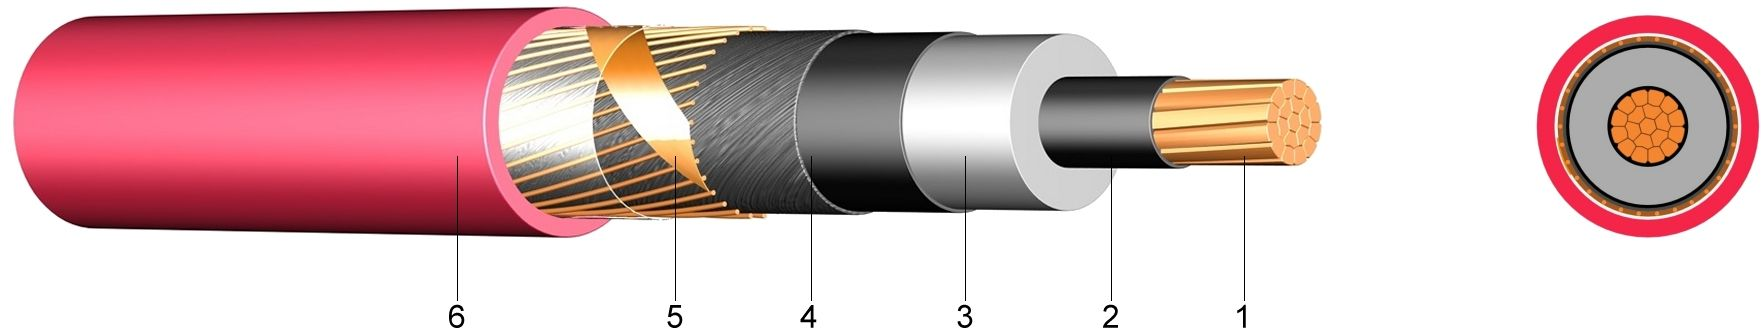 Constrution Xlpe Insulated Cable : N xsy kv xlpe insulated single core cable with